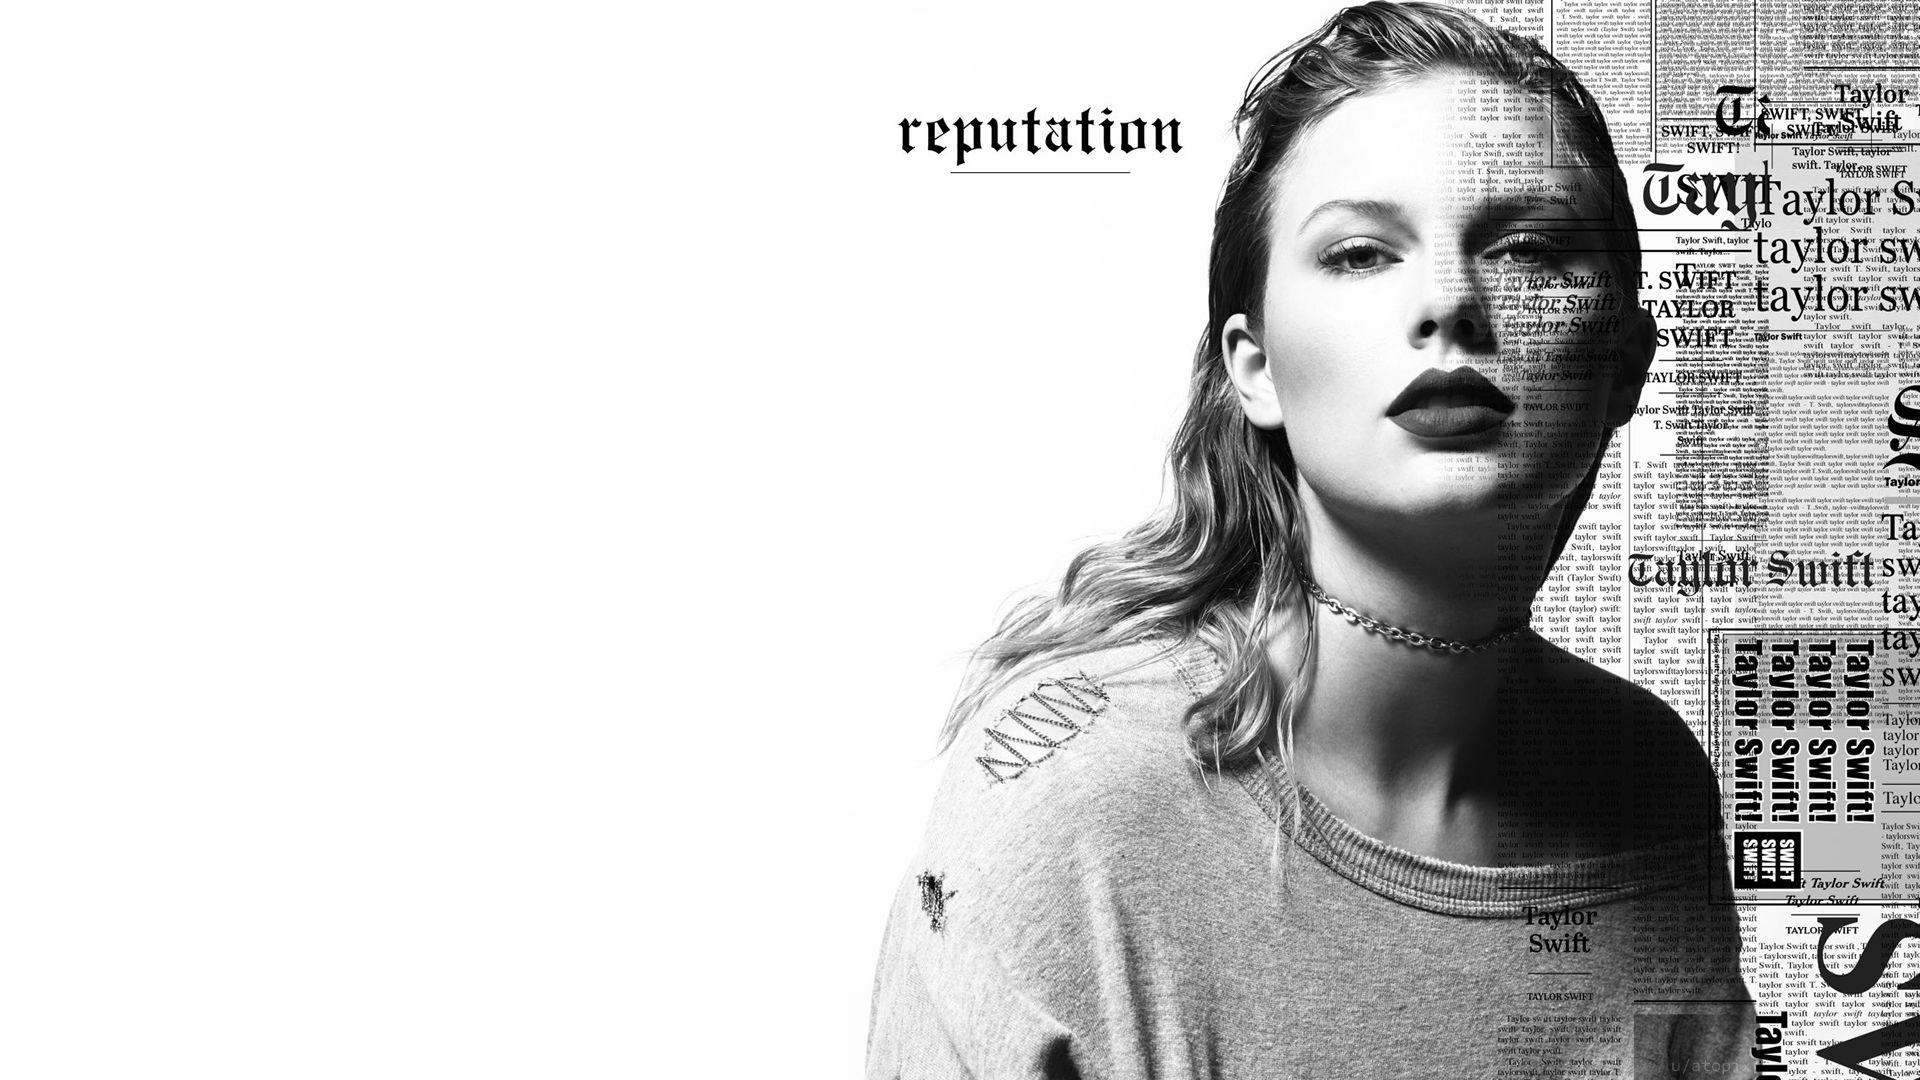 Reputation taylor swift wallpapers wallpaper cave i made a ton of reputation desktop wallpapers in multiple colors voltagebd Images